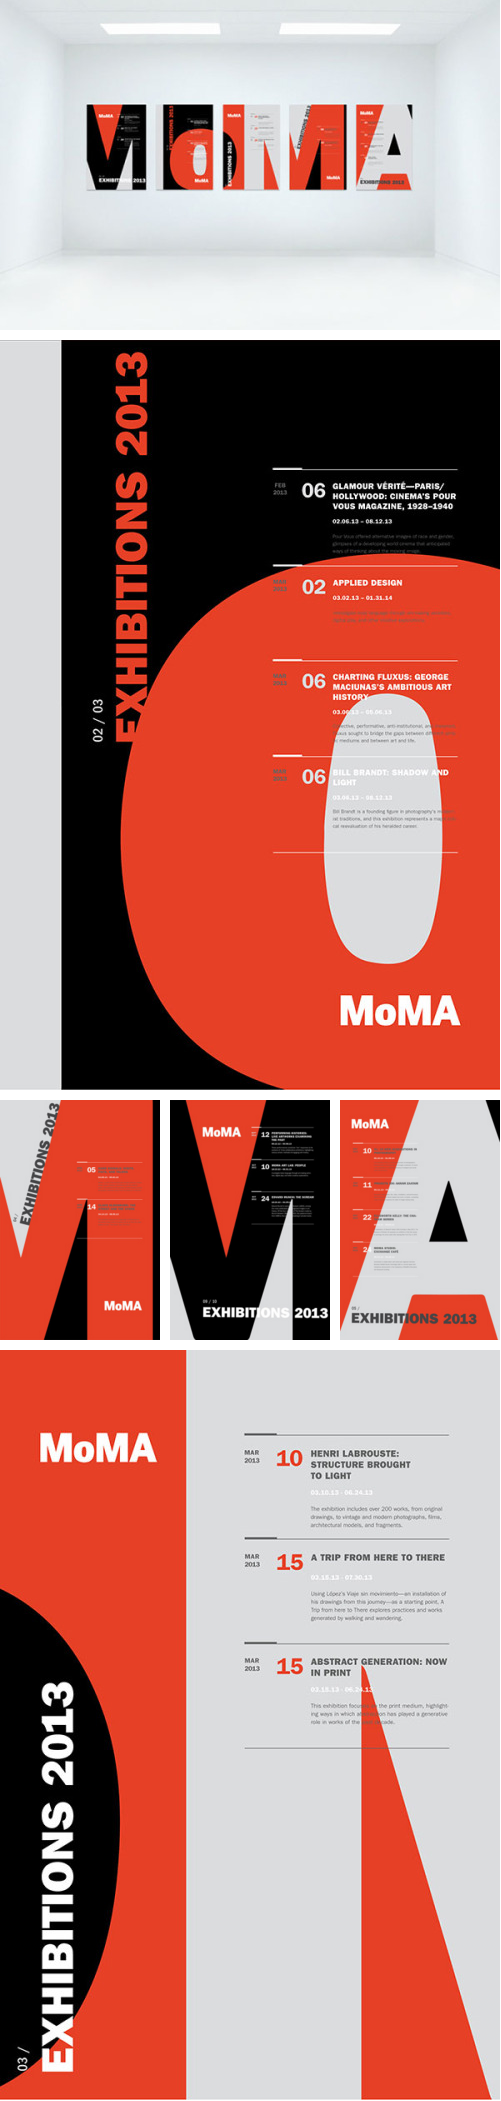 MoMA Exhibit Poster Series